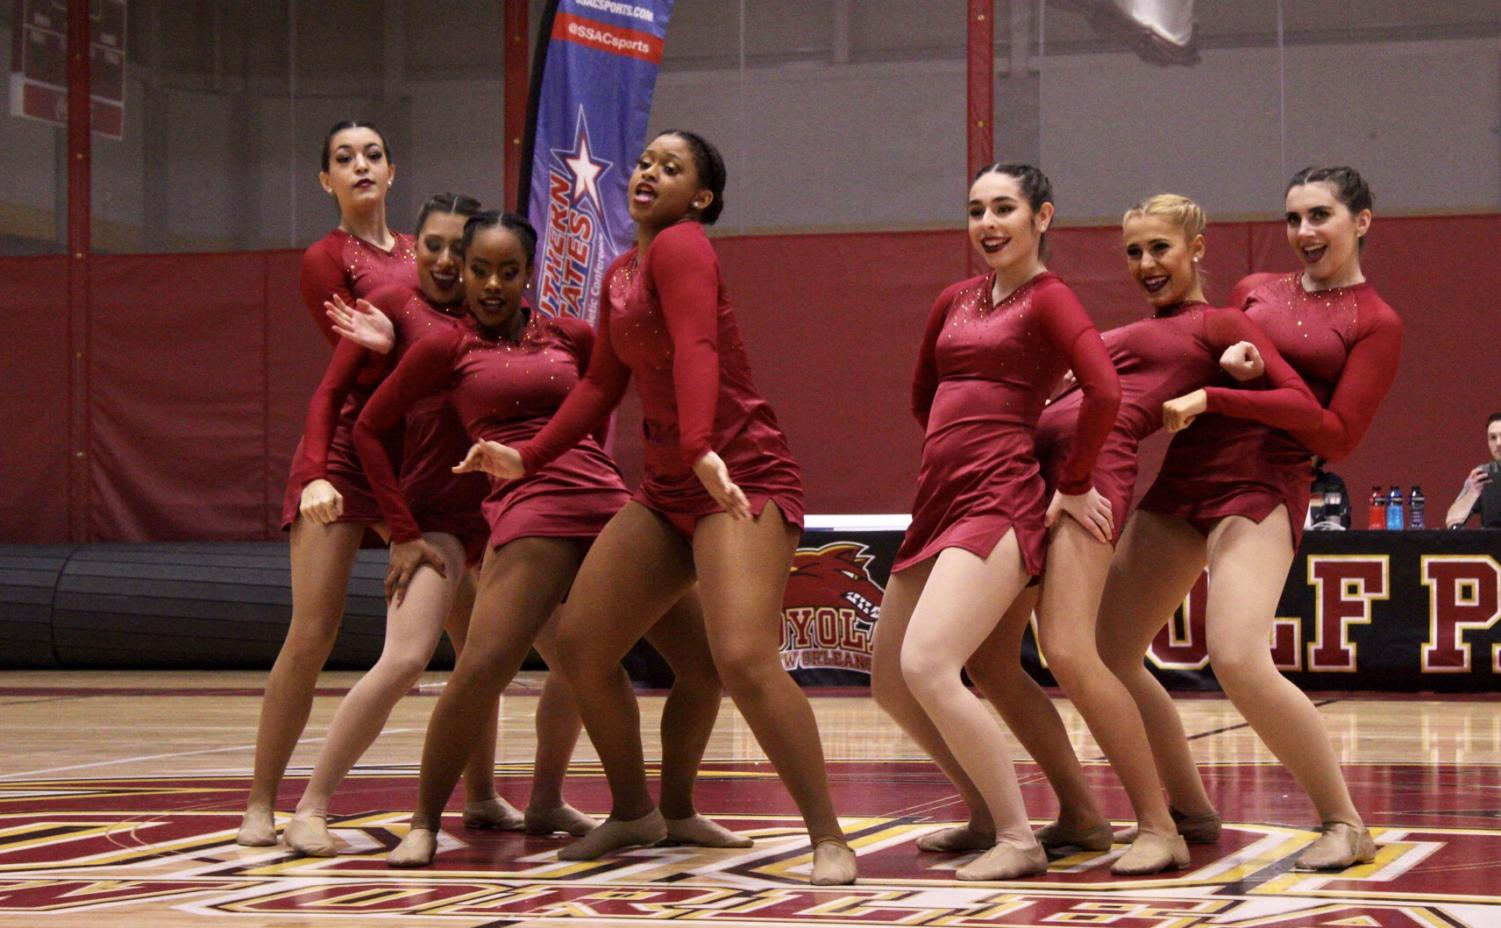 Loyola's dance team strikes a pose during their routine during the conference championship. Photo credit: Ariel Landry